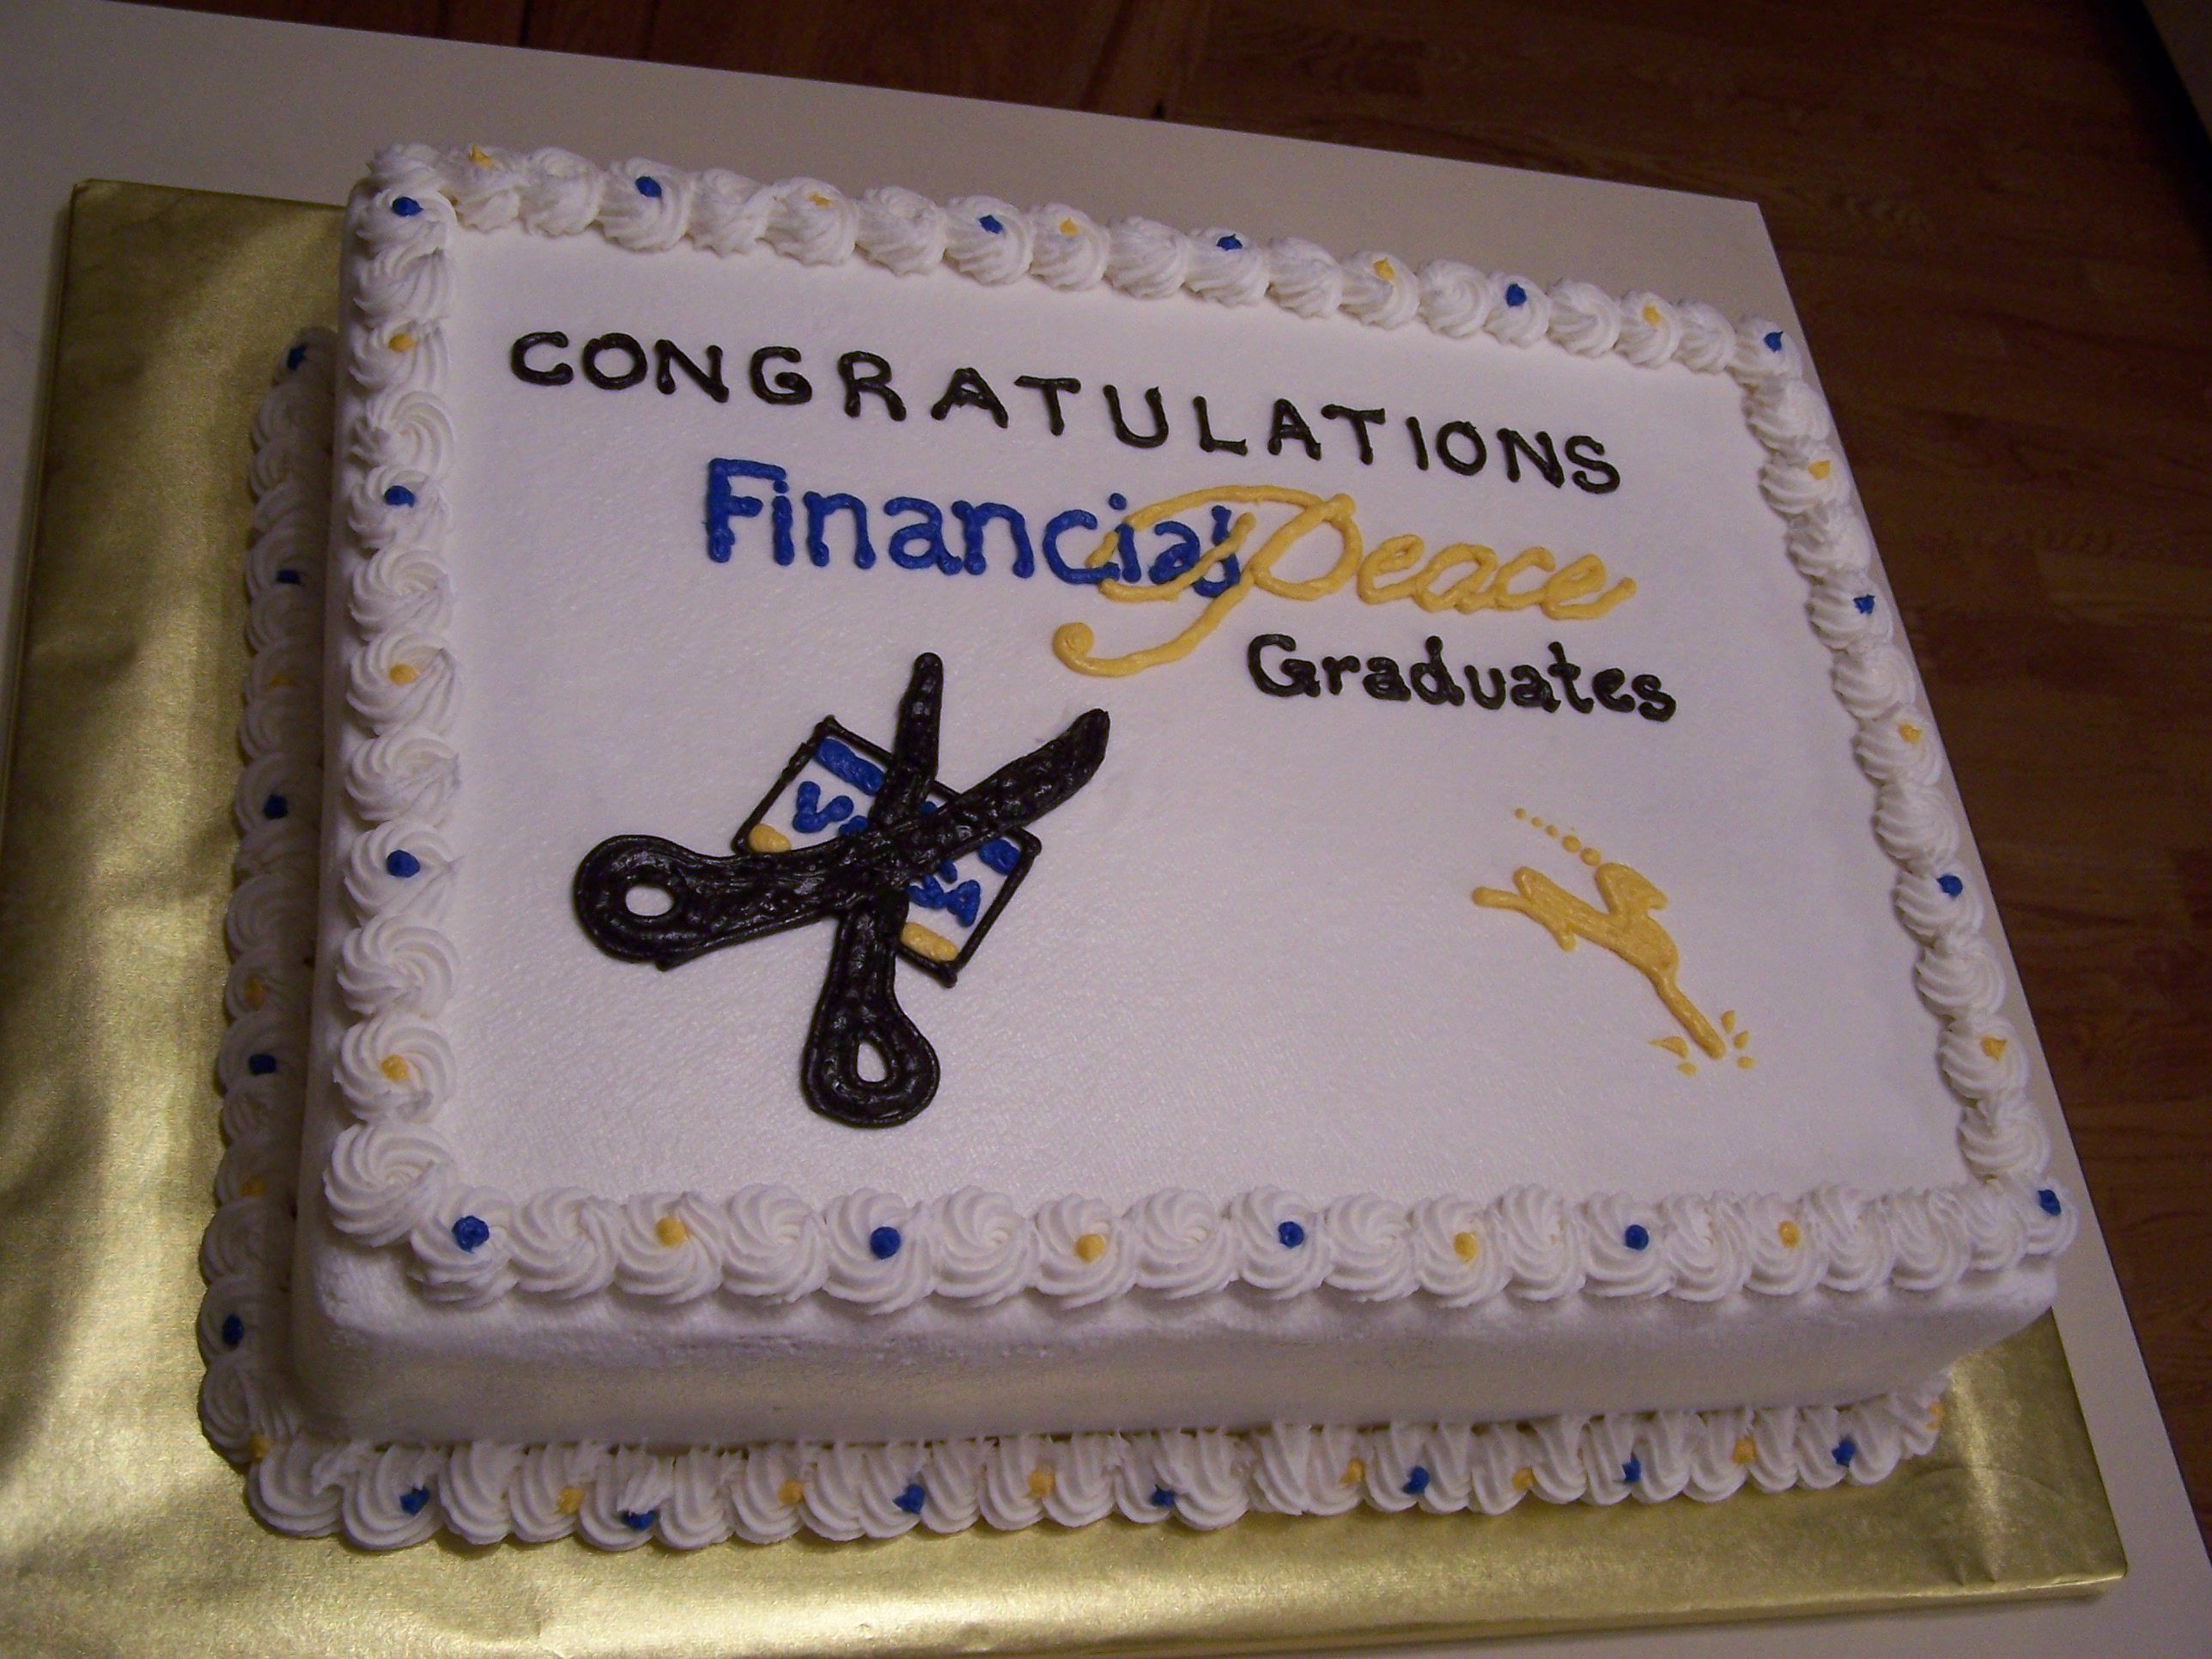 Dave Ramsey Cake Financial peace university, Dave ramsey